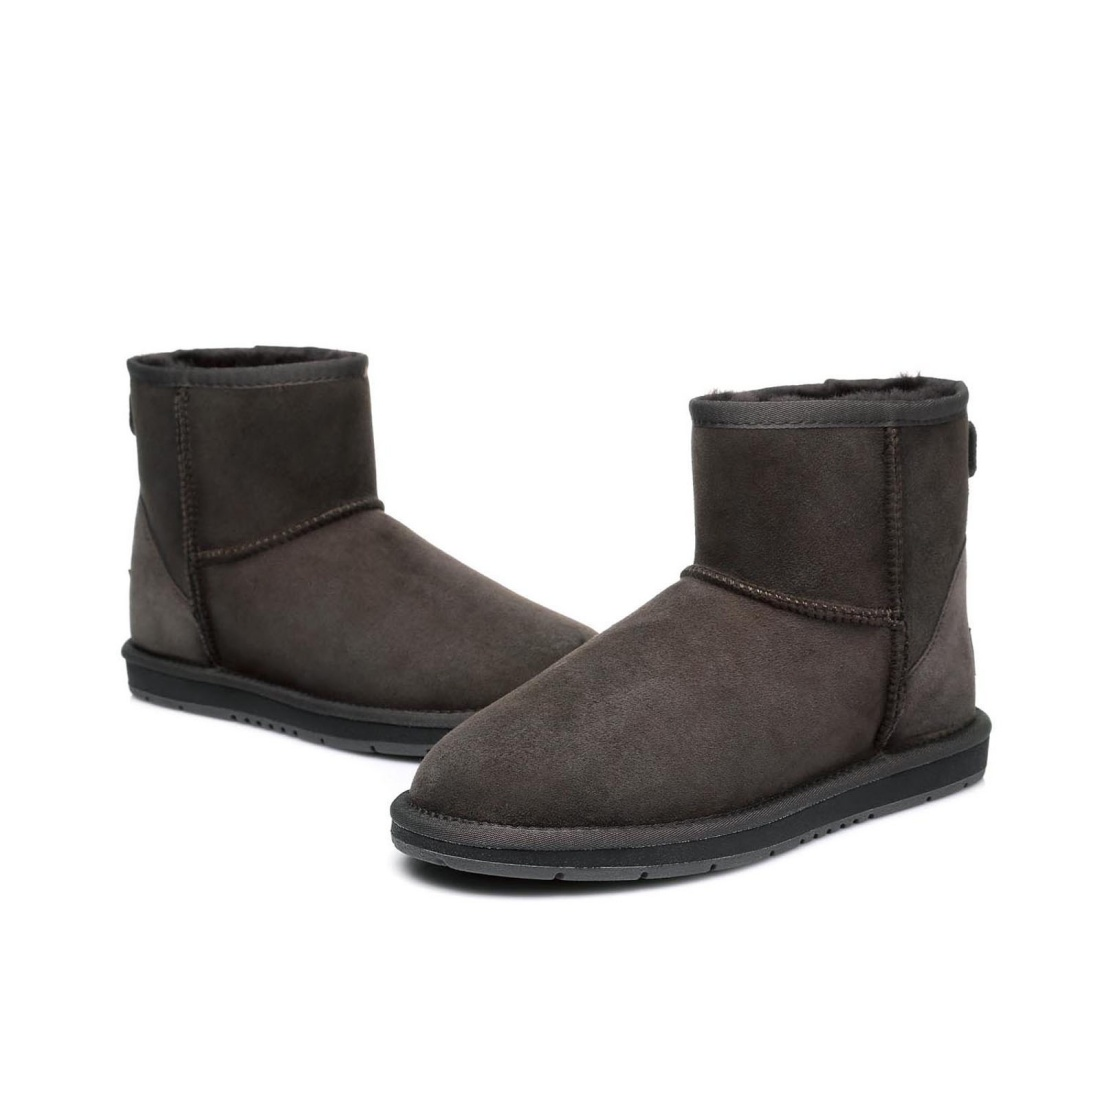 UGG Ankle Boots Mini - Chocolate - AU Women 5 / Men 3